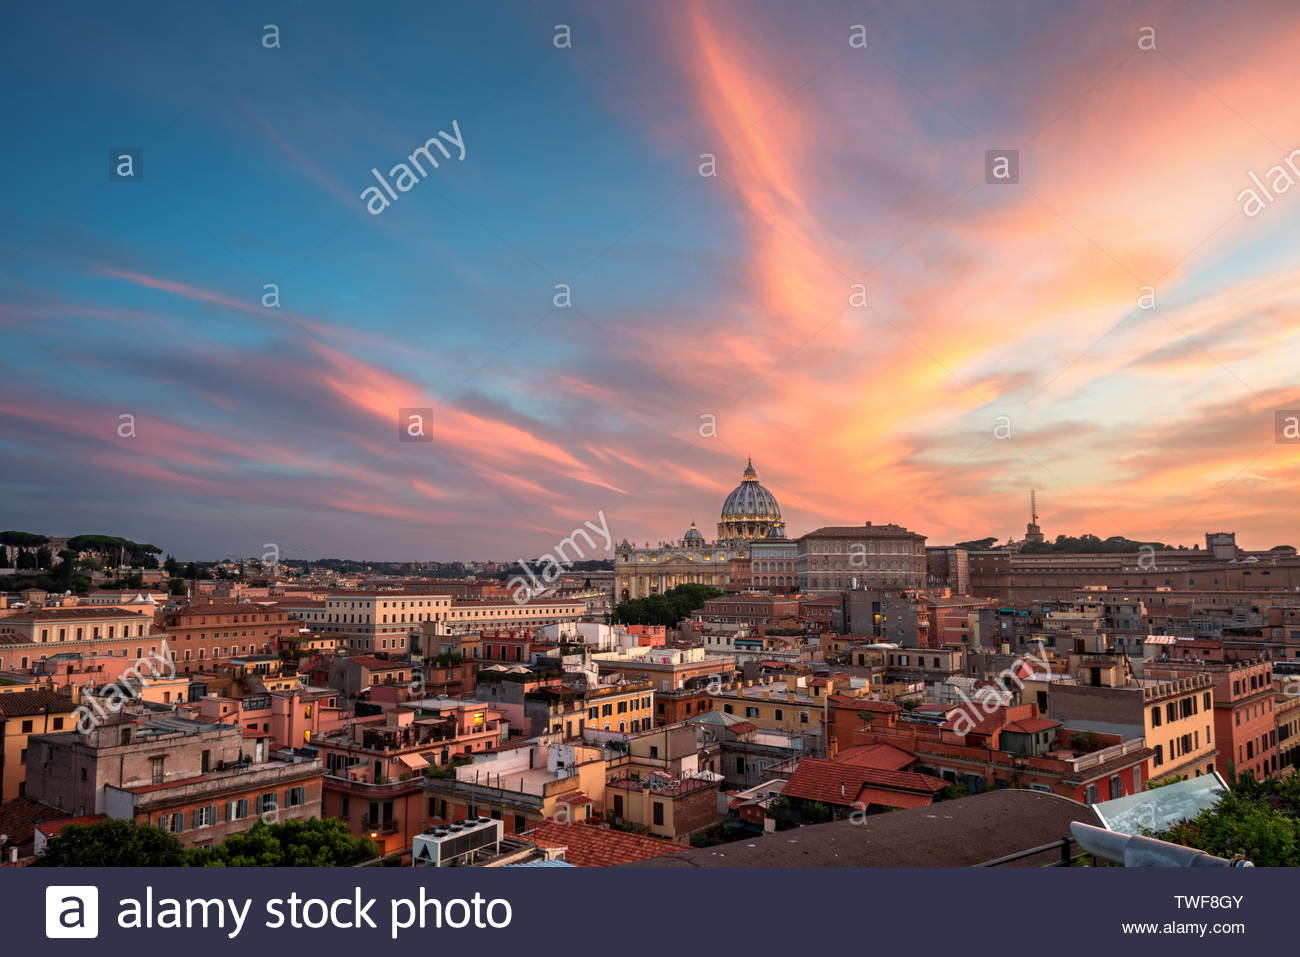 Aerial view of Vatican City at sunset. Drone point of view. - Stock Image